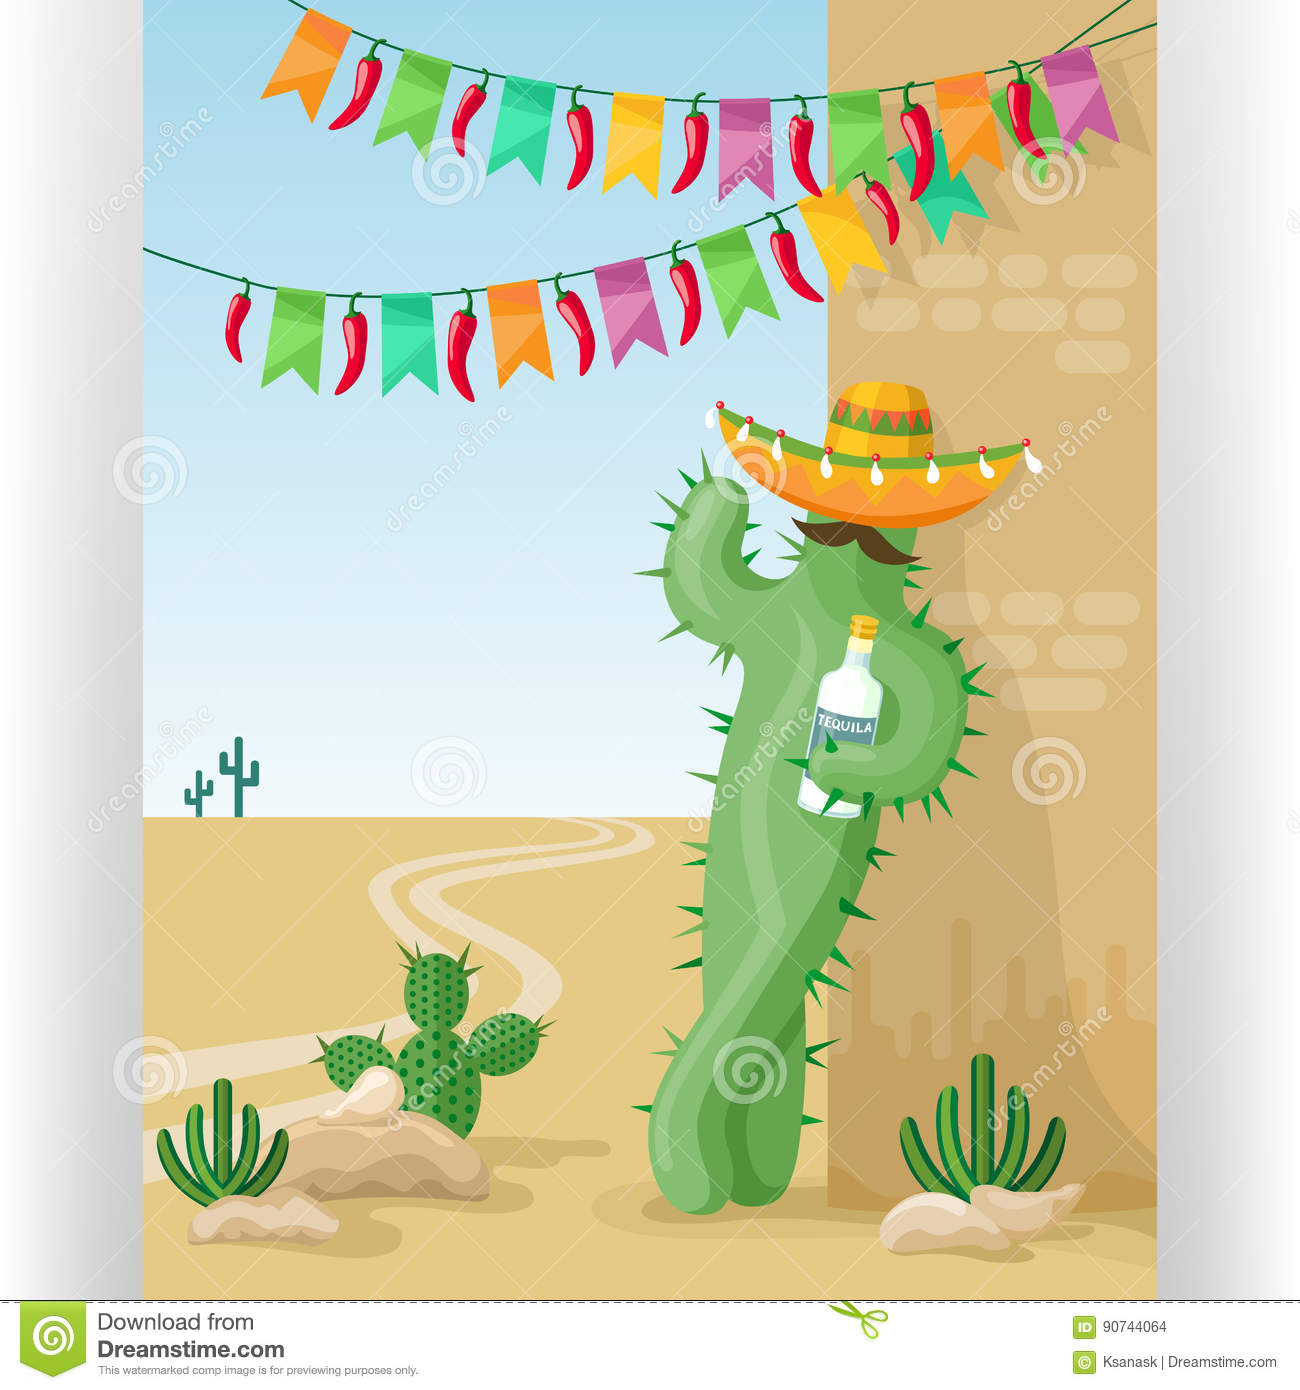 Funny Greeting Card Template Cactus Sombrero Tequila Colorful Flags Red Chili Peppers Desert Mexican Landscape Jpg